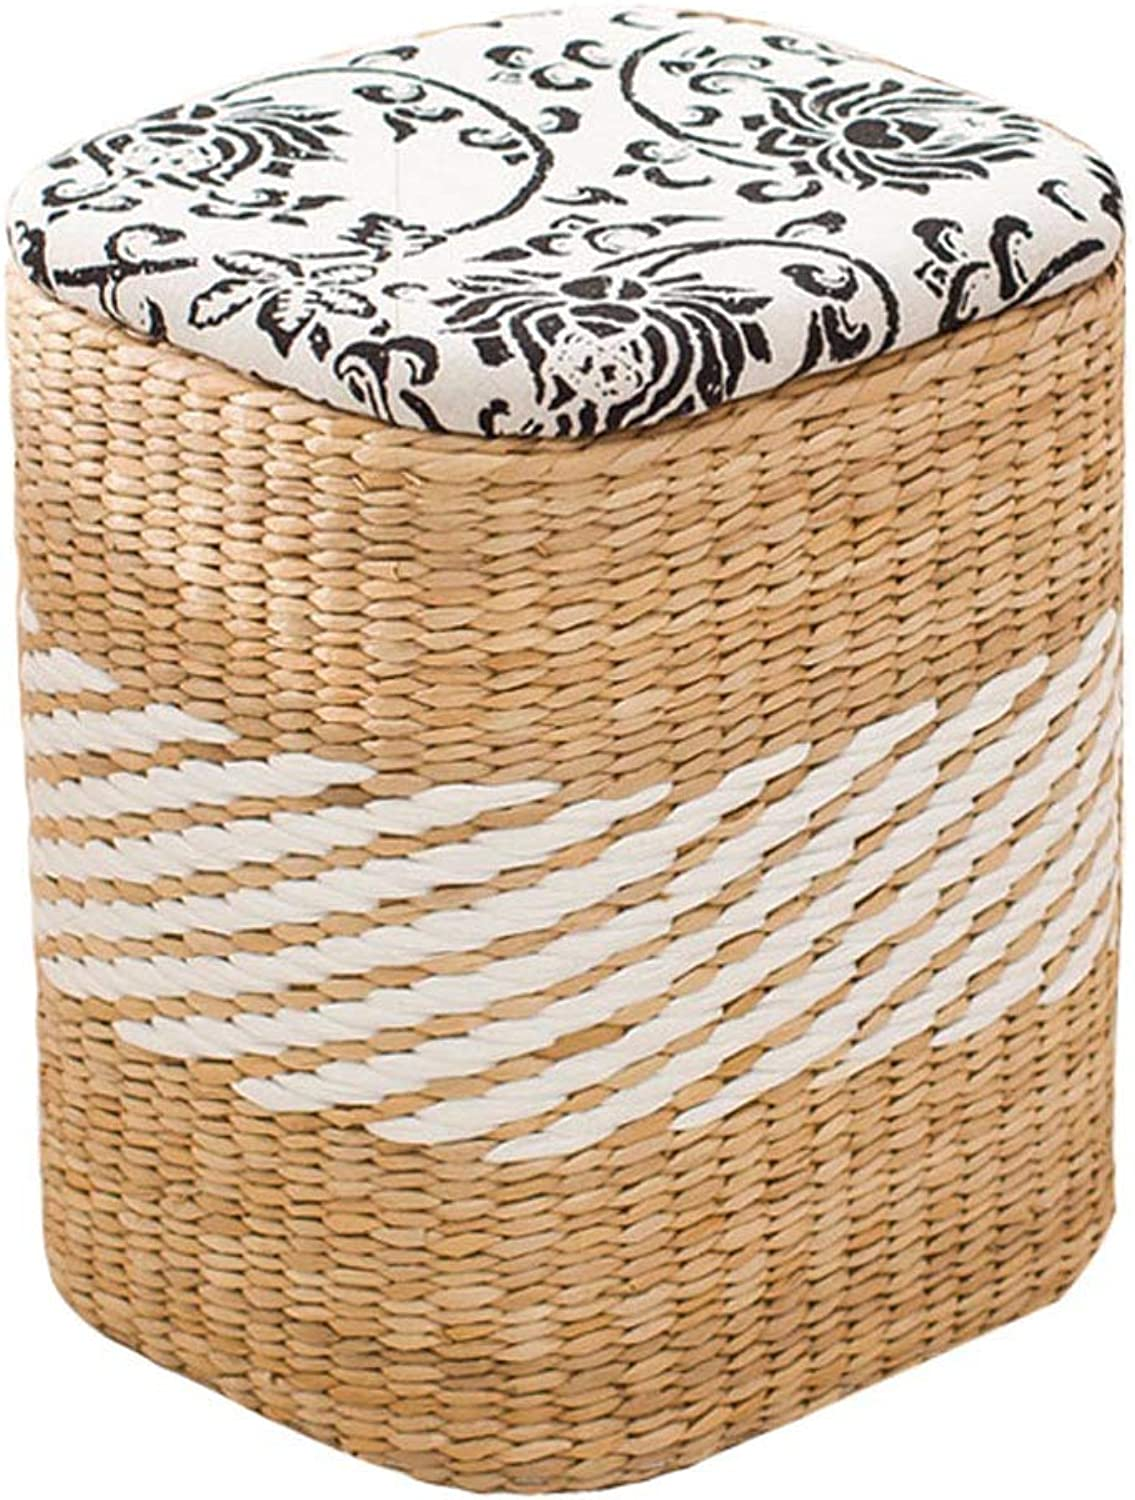 Solid Wood Storage Stool Rattan Footstool, Creative Dressing Stool Home Square Straw Dress shoes Stool, Suitable for Living Room, Bedroom, Study